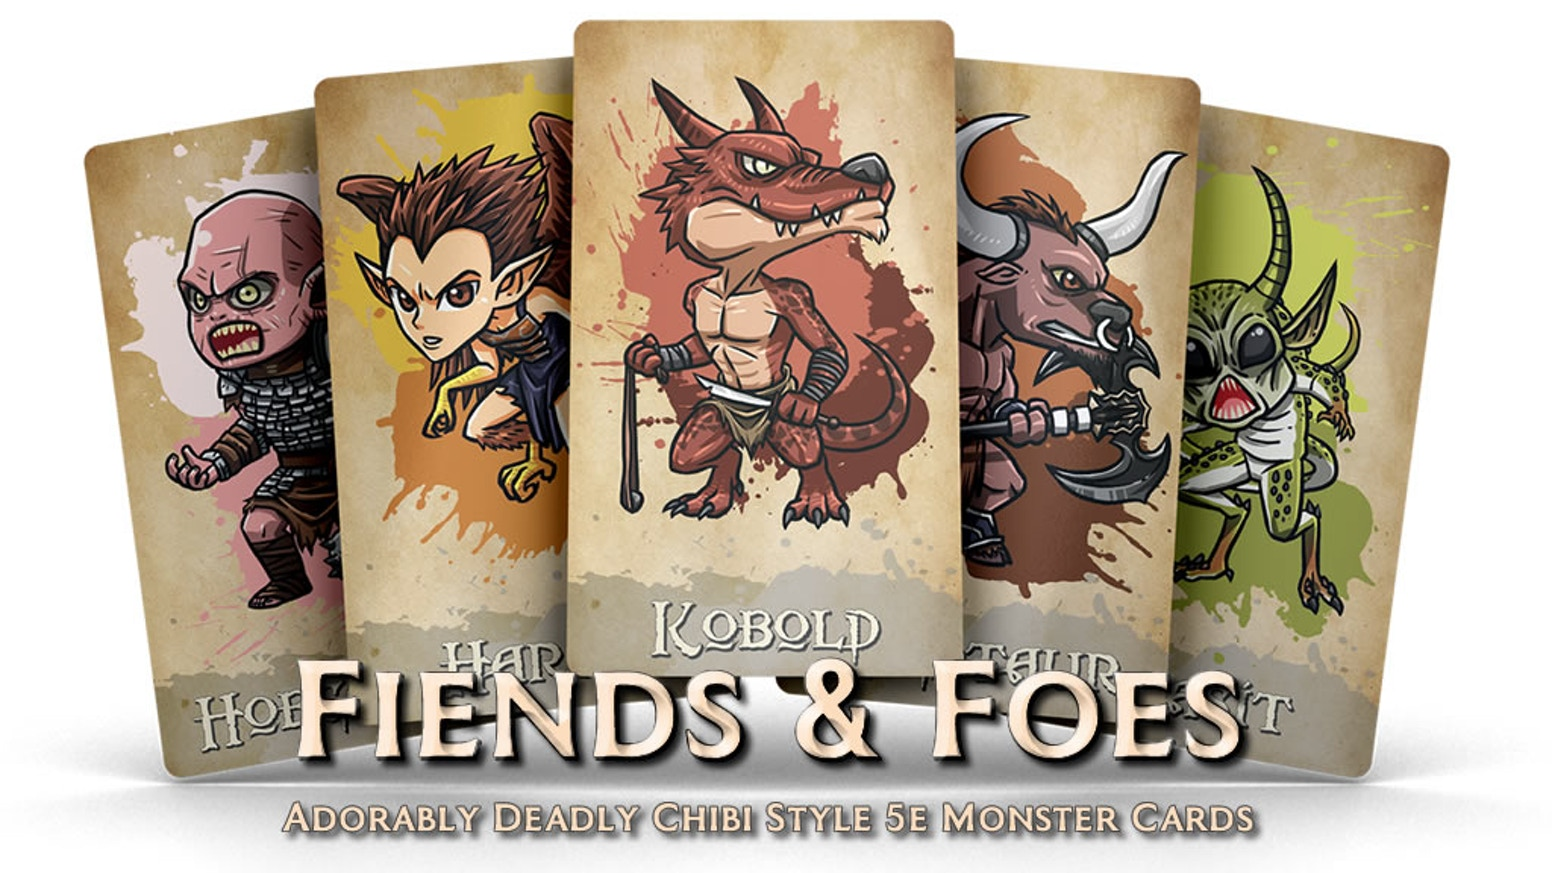 Fiends & Foes - Adorably Deadly Chibi Style 5e Monster Cards